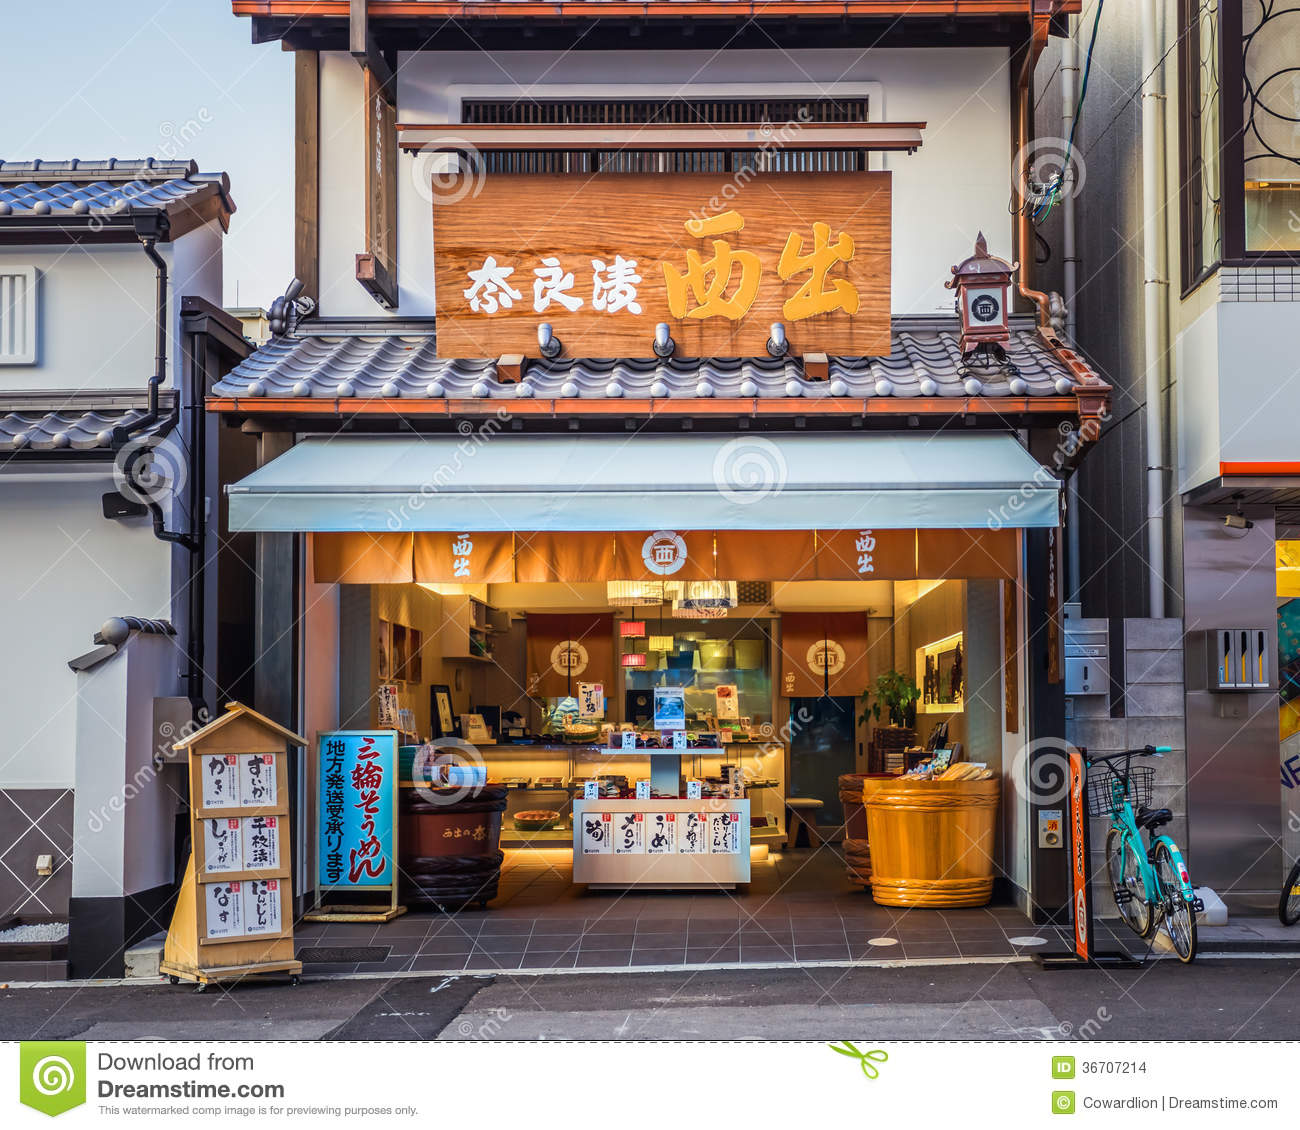 a Japan shop in